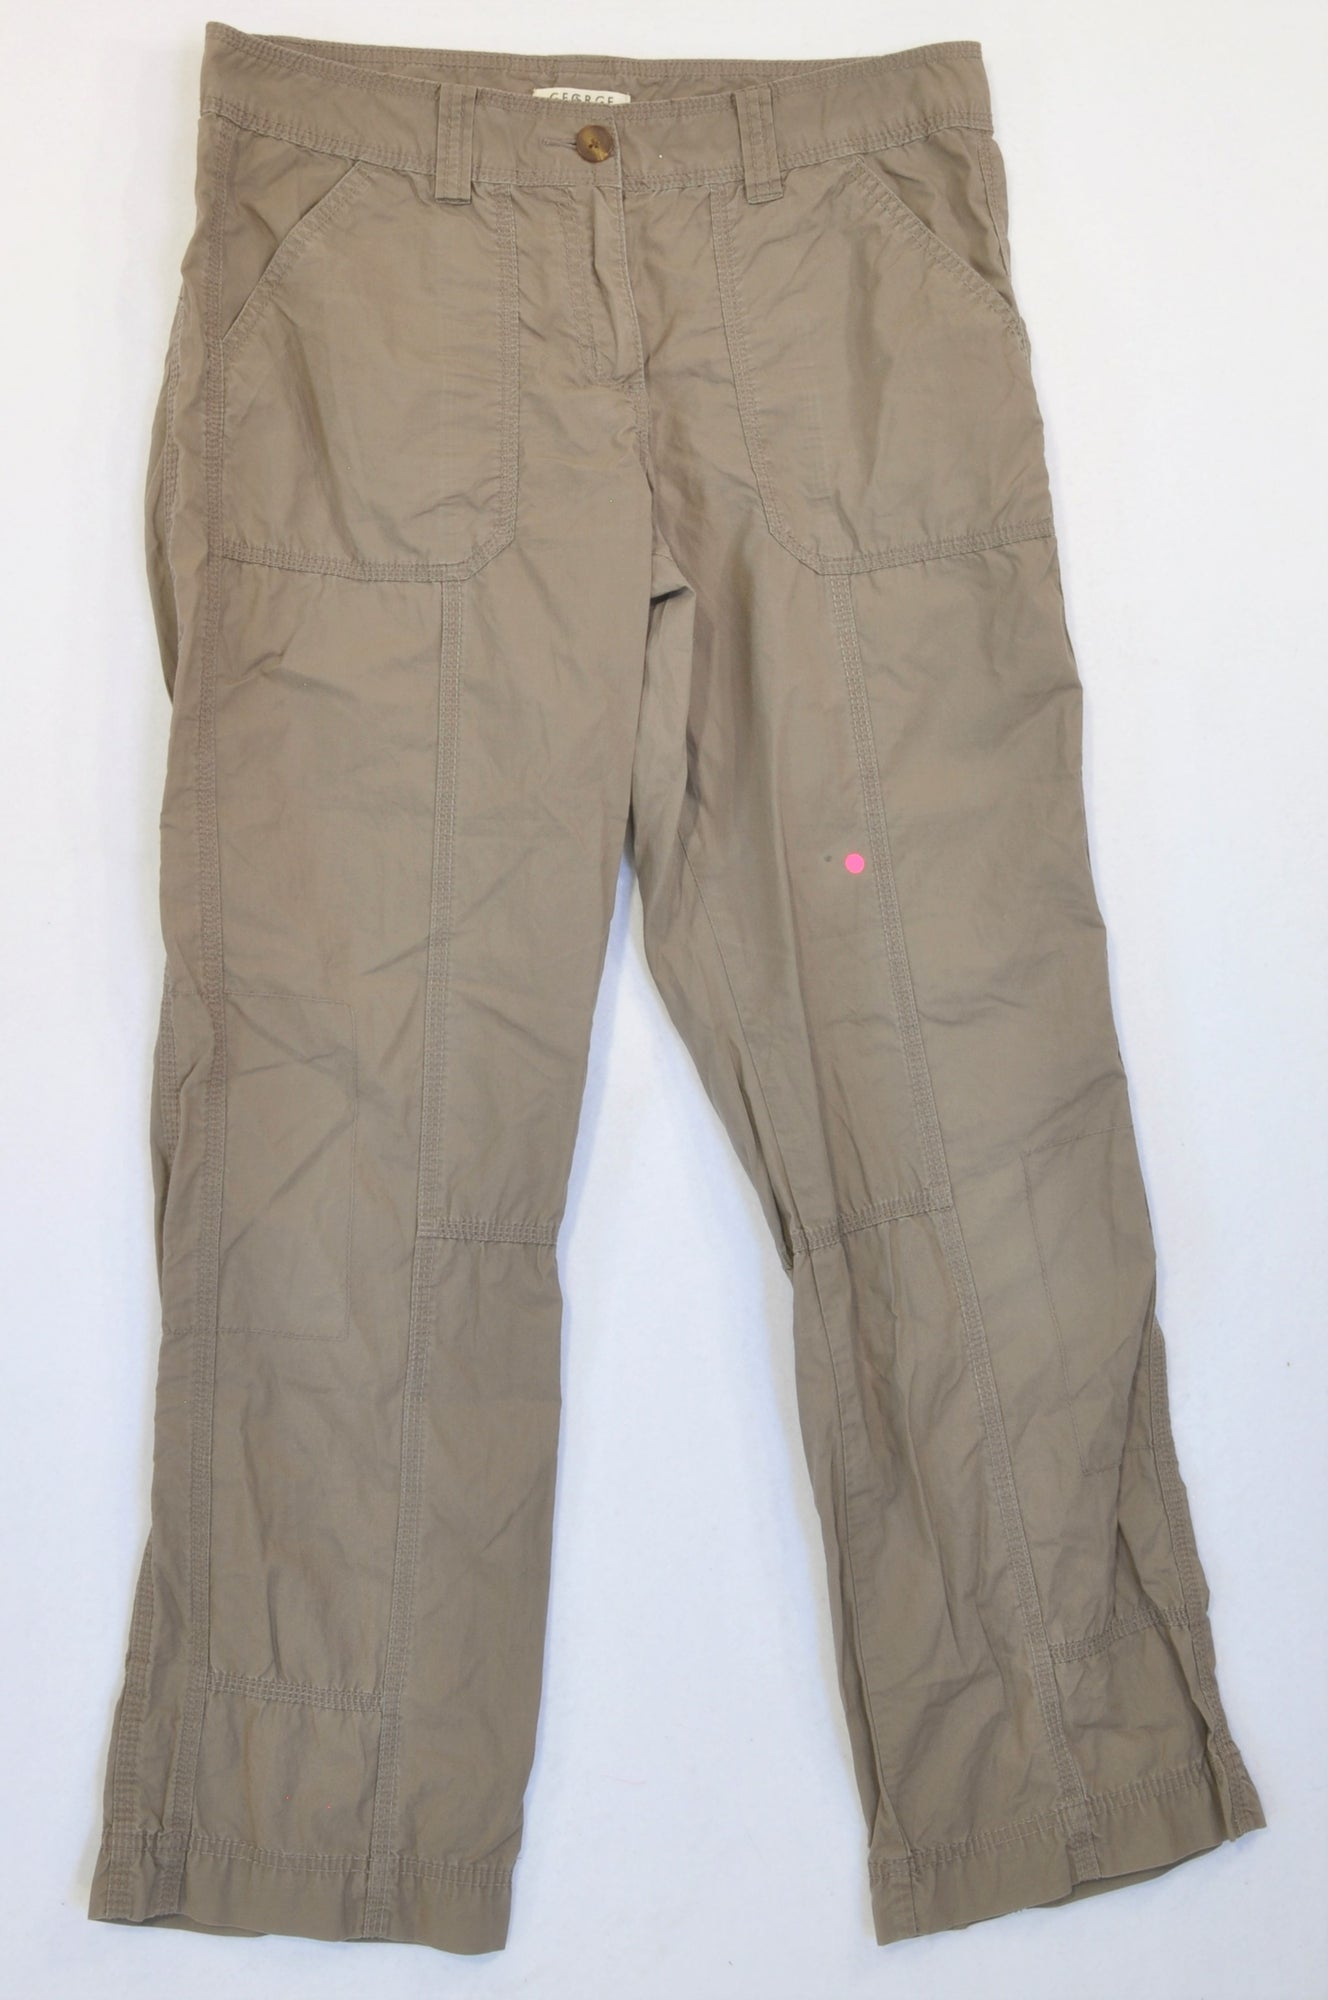 George Soft Brown Lightweight Cargo Pants Women Size 14